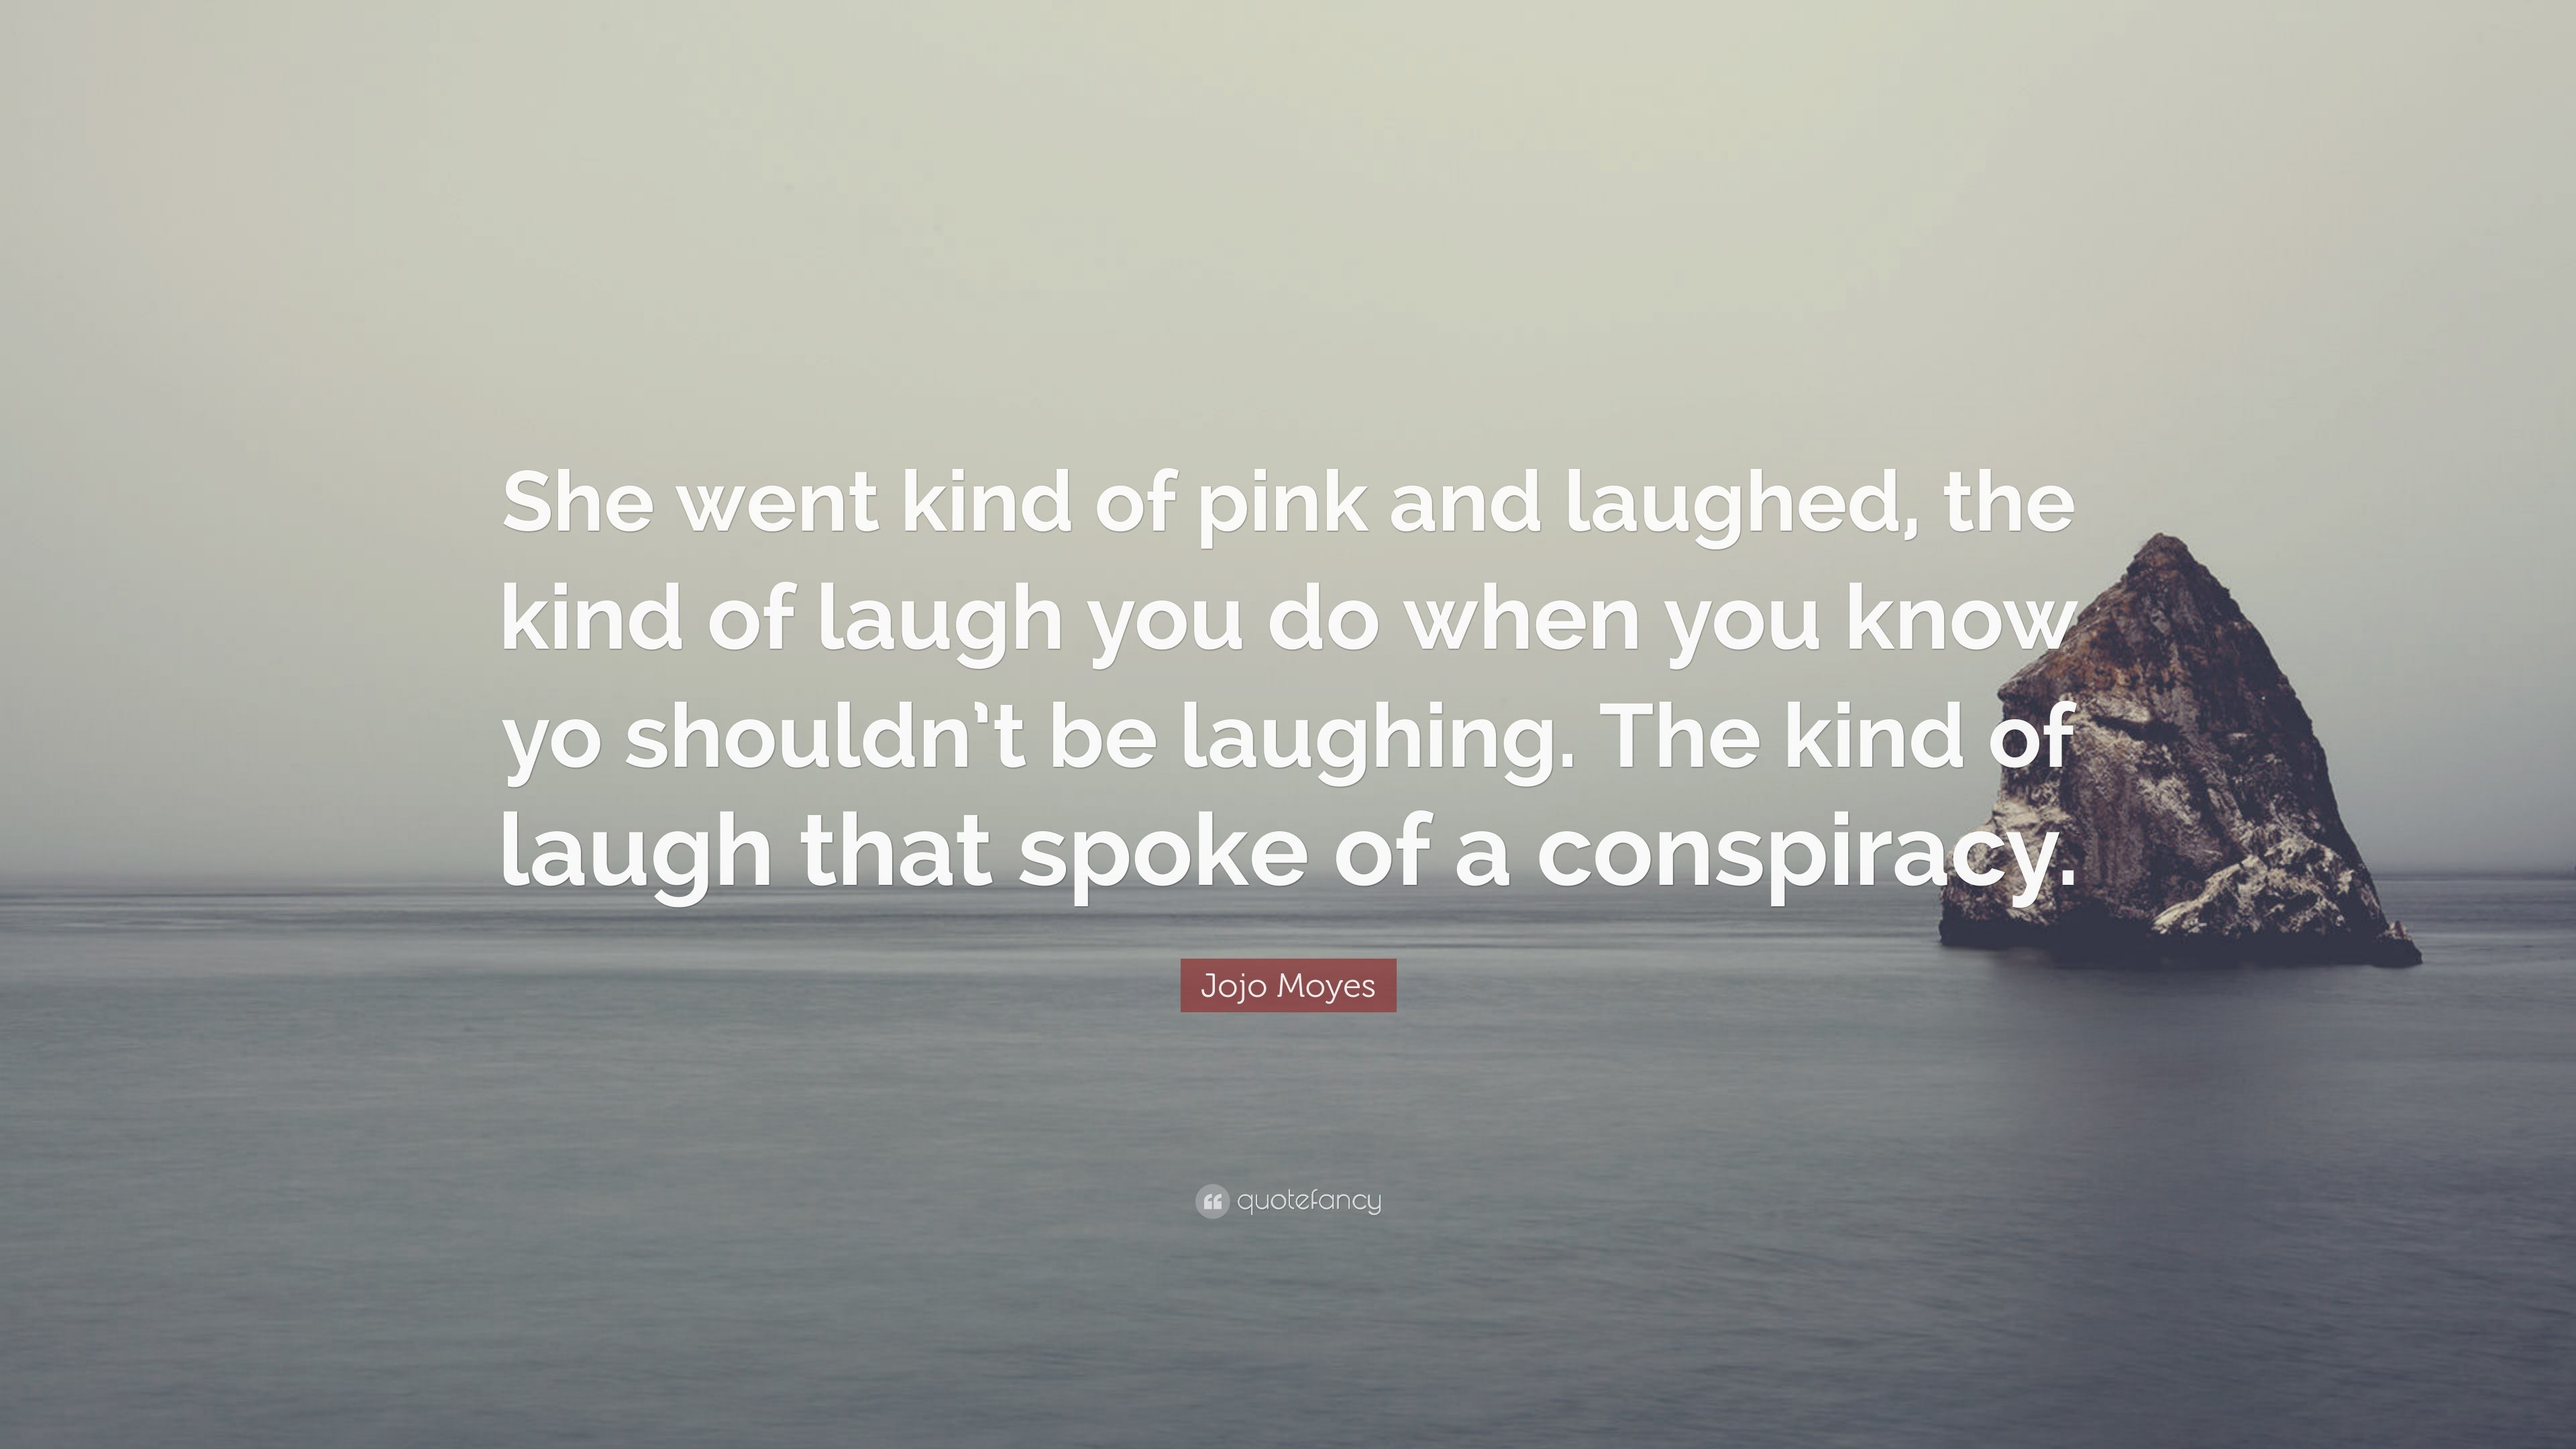 Laughing When You Shouldnt Quotes : Jojo moyes quote she went kind of pink and laughed the